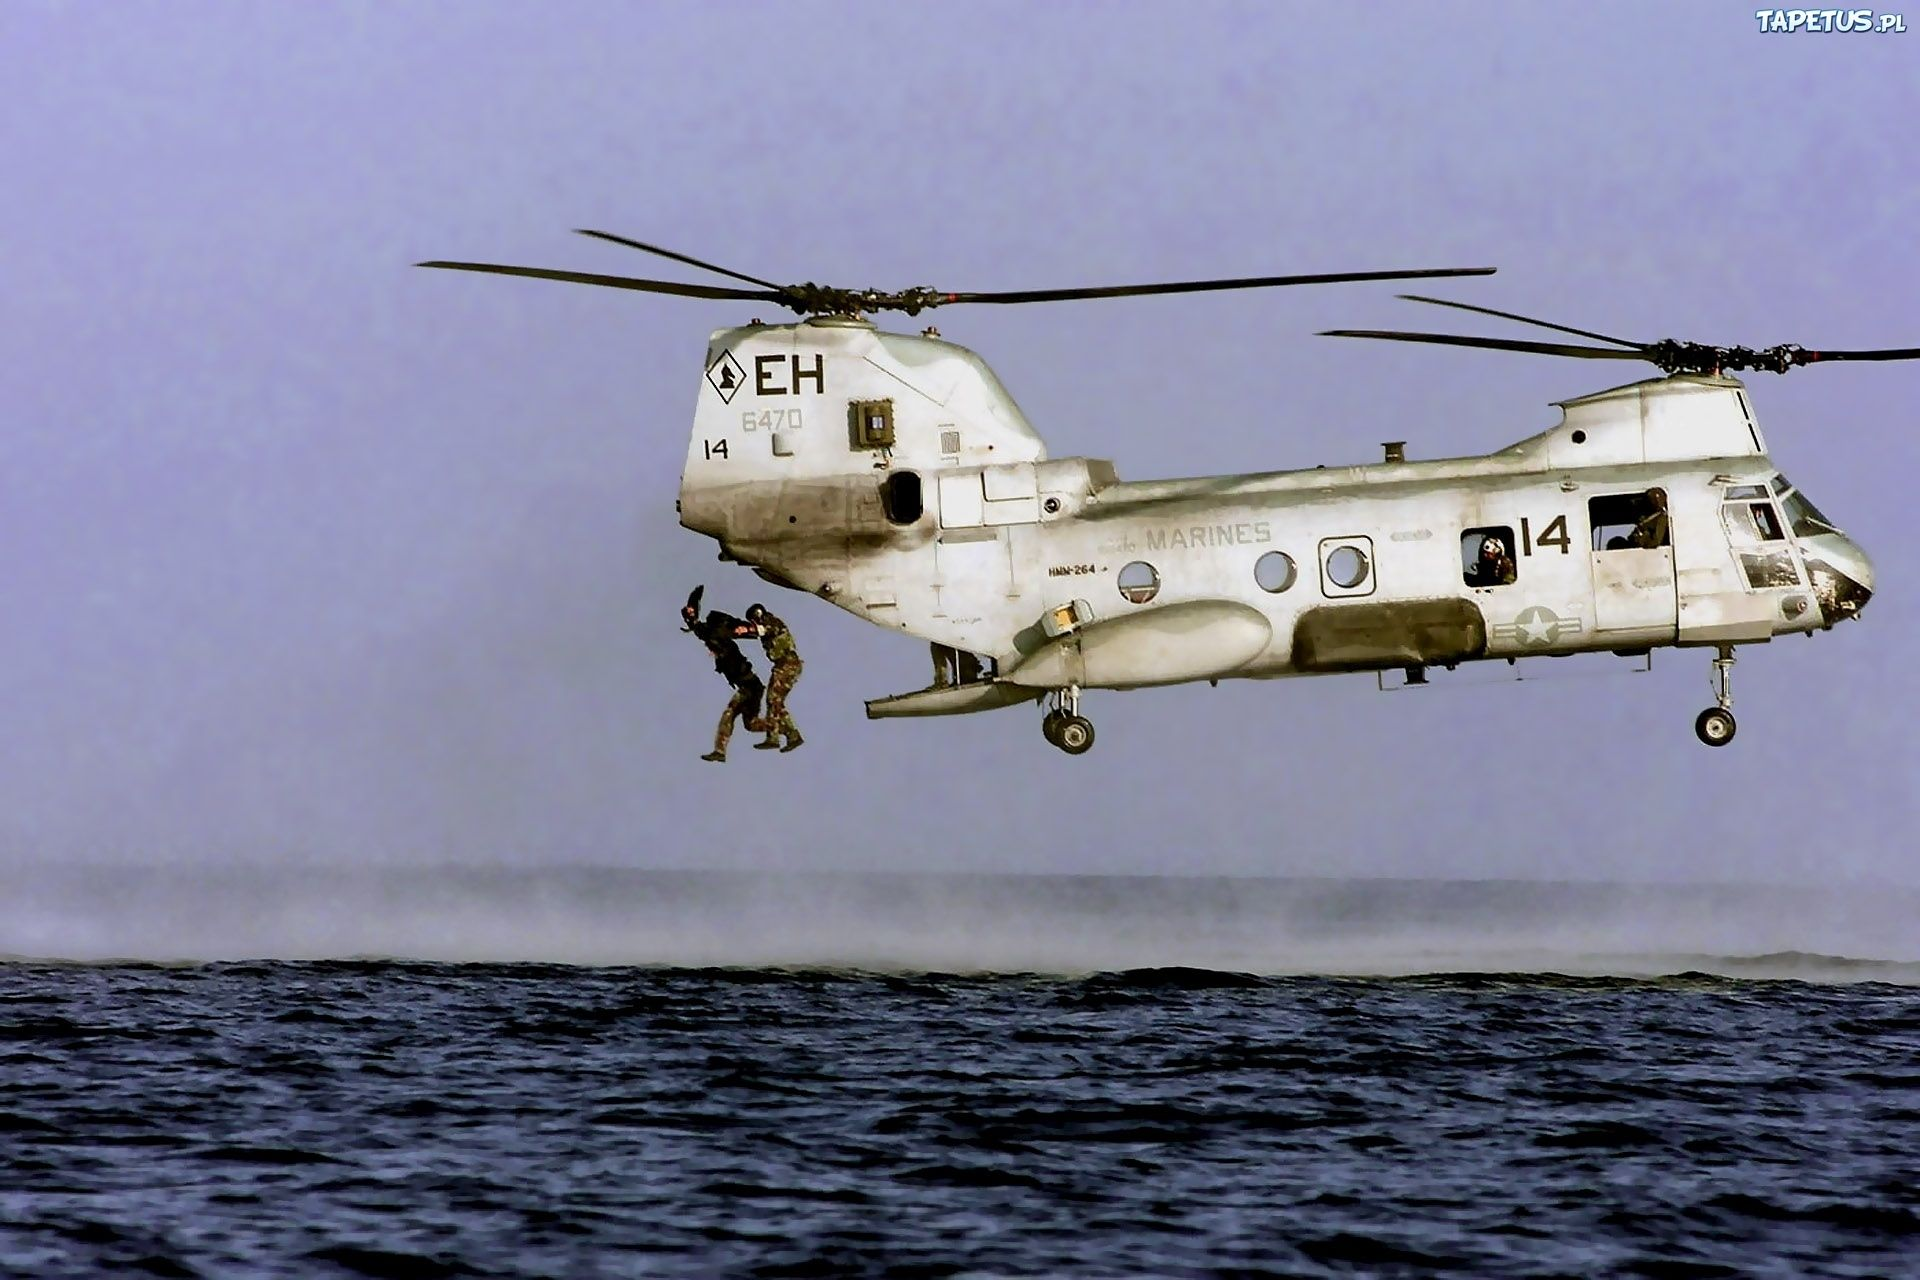 Boeing Vertol Helicopter Ship Old Photo